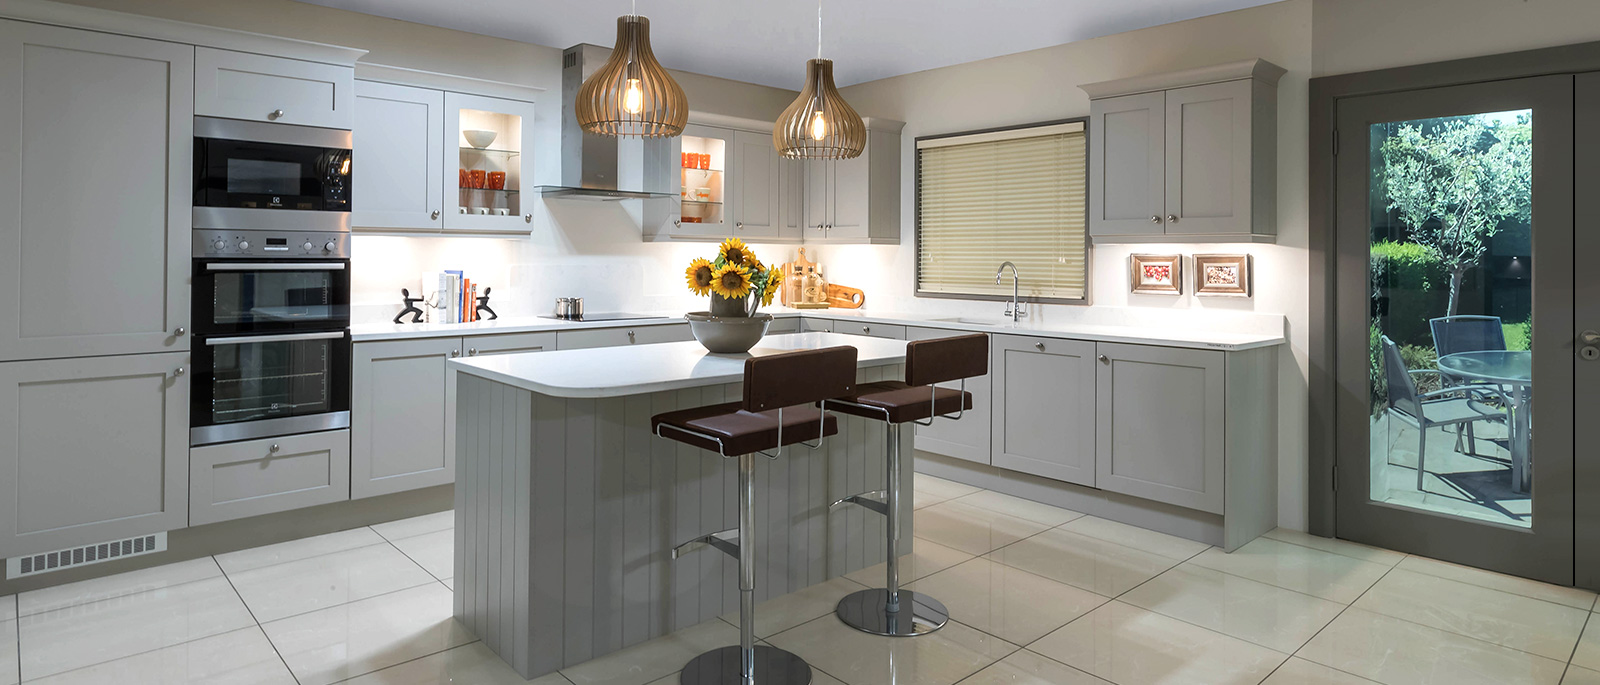 Kitchens nolan kitchens contemporary kitchens fitted for Kitchen design planner